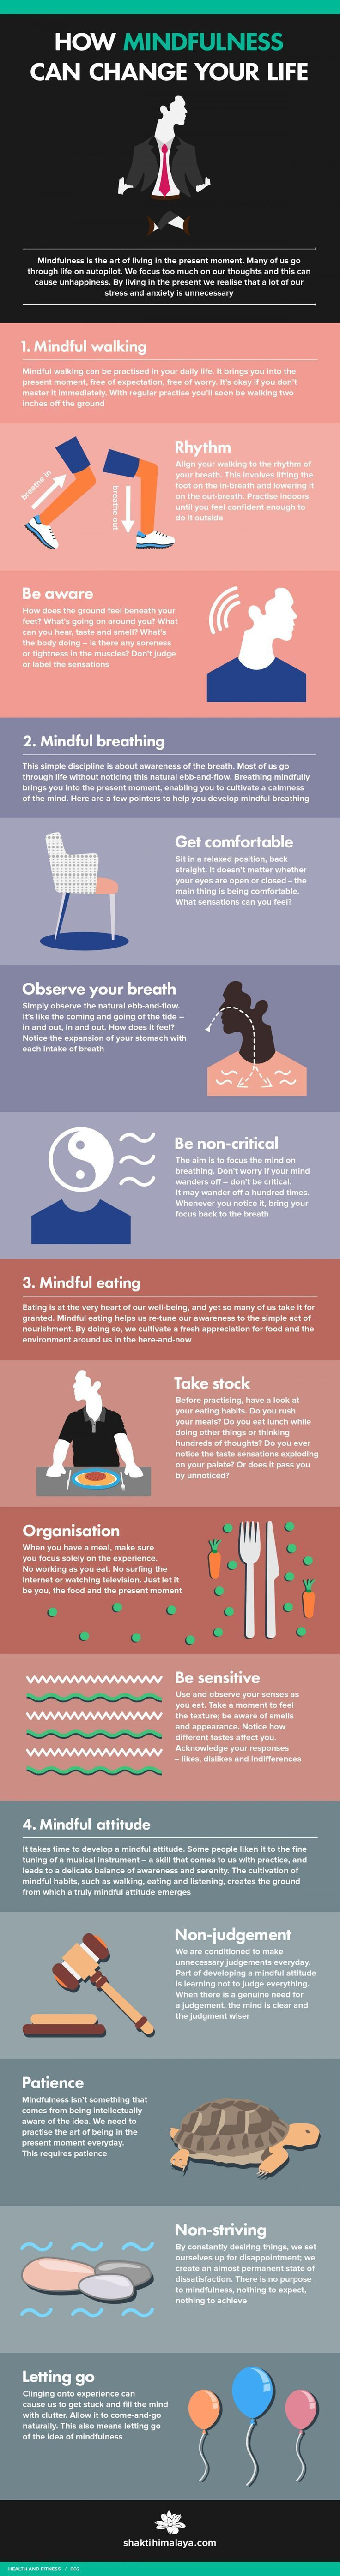 "Mindfulness is not a magic trick that all of a sudden eliminates stress and gives you the life of your dreams. But people who have integrated a mindfulness practice into their lives, repeatedly use the phrase ""life-changing"" to describe it. Whether it's here in this Infographic or somewhere in the future, we hope the[.....]"